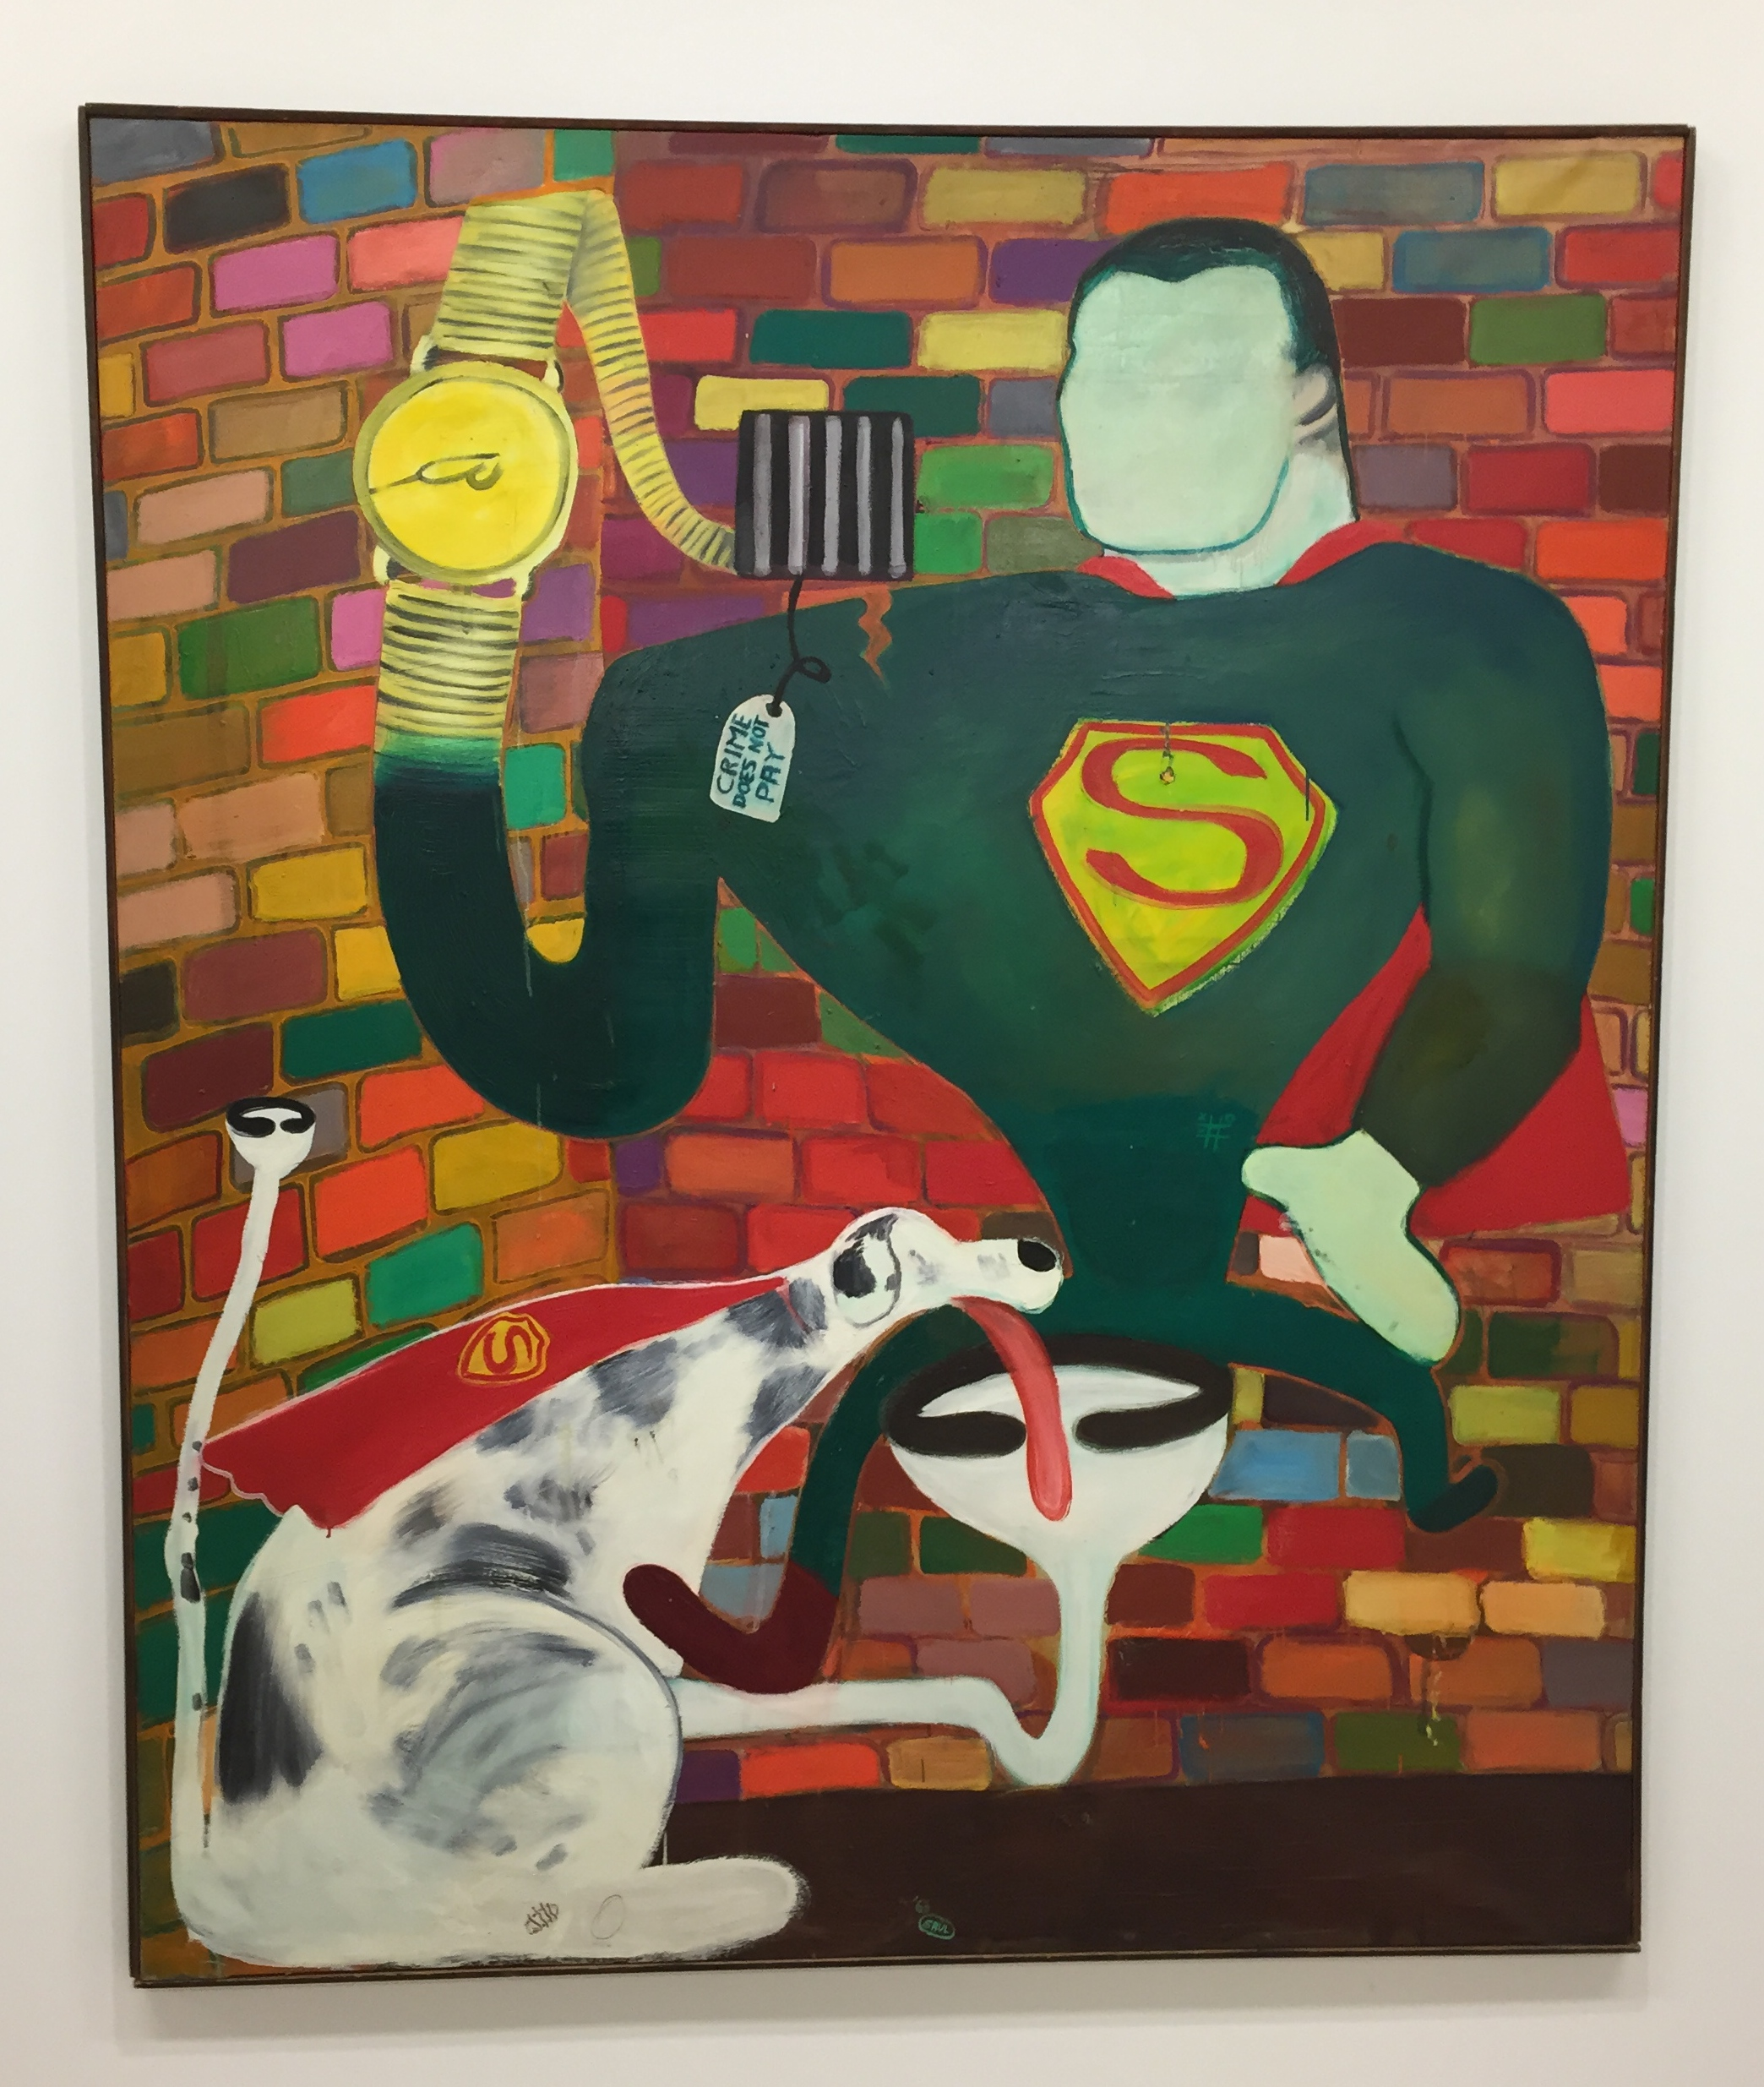 Peter Saul Superman and Superdog in Jail, 1963 Oil on Canvas 75 x 63 inches